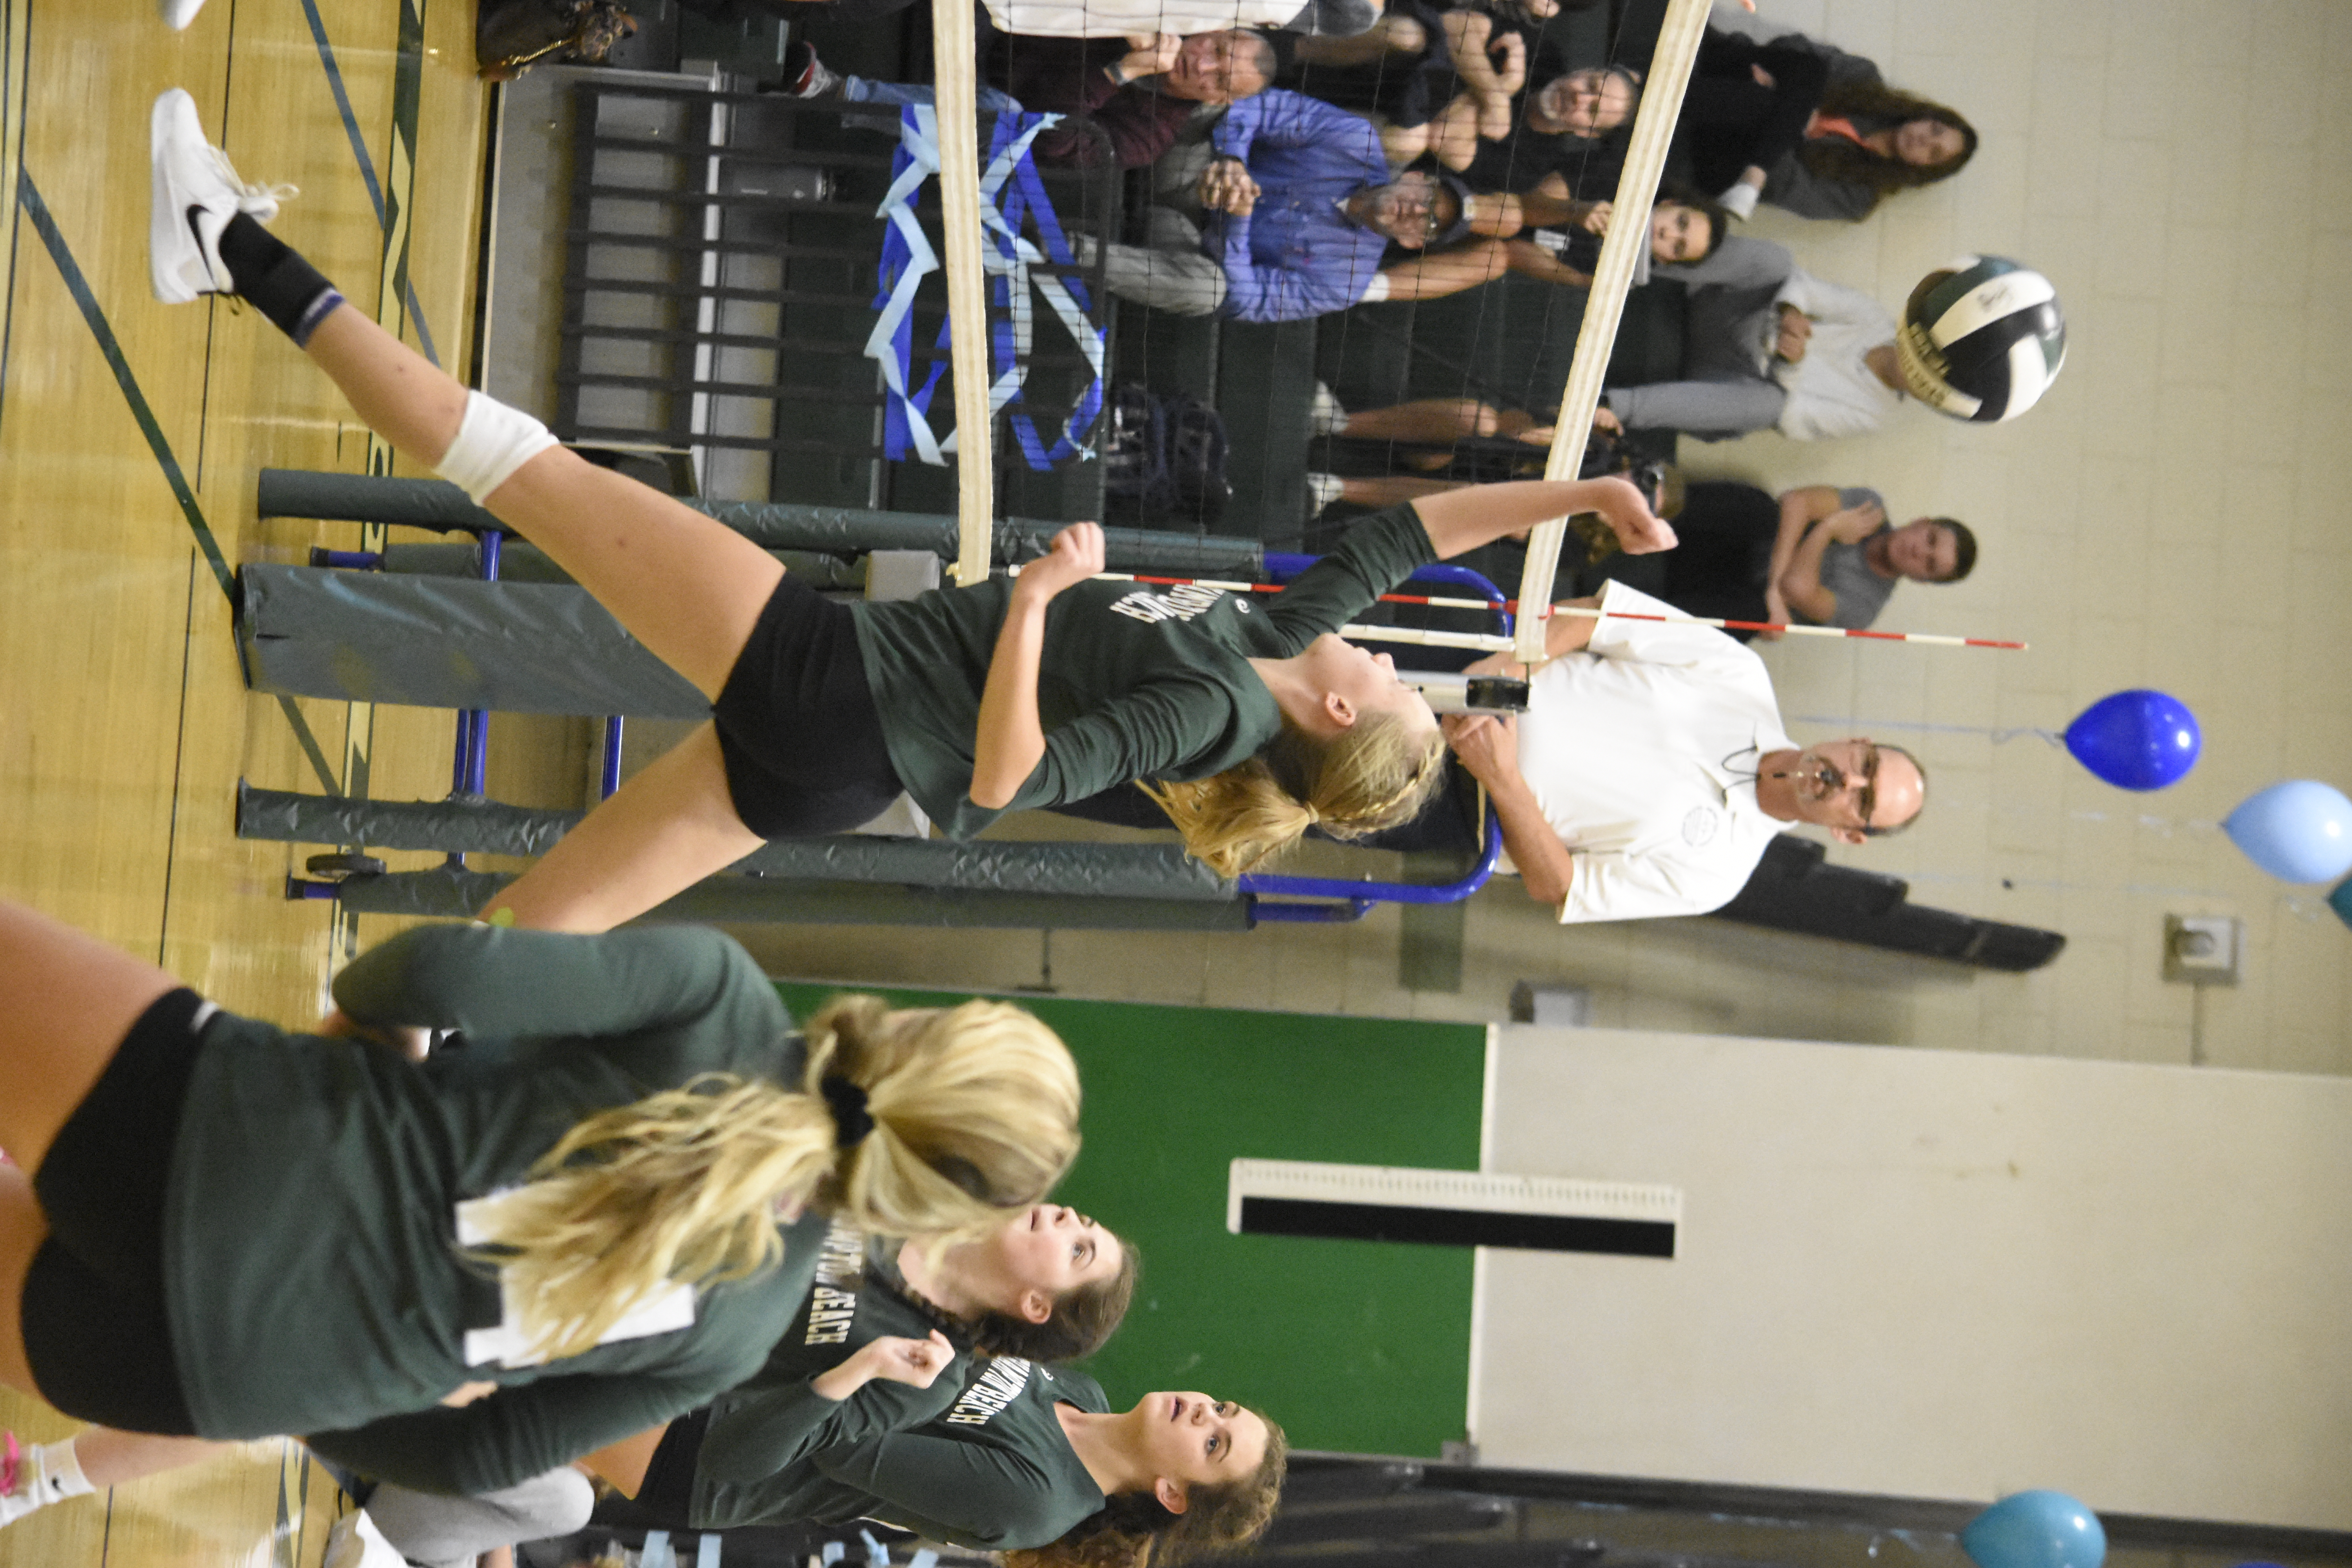 Senior Michelle Kryl led Westhampton Beach with 15 kills in Friday's 3-2 loss.